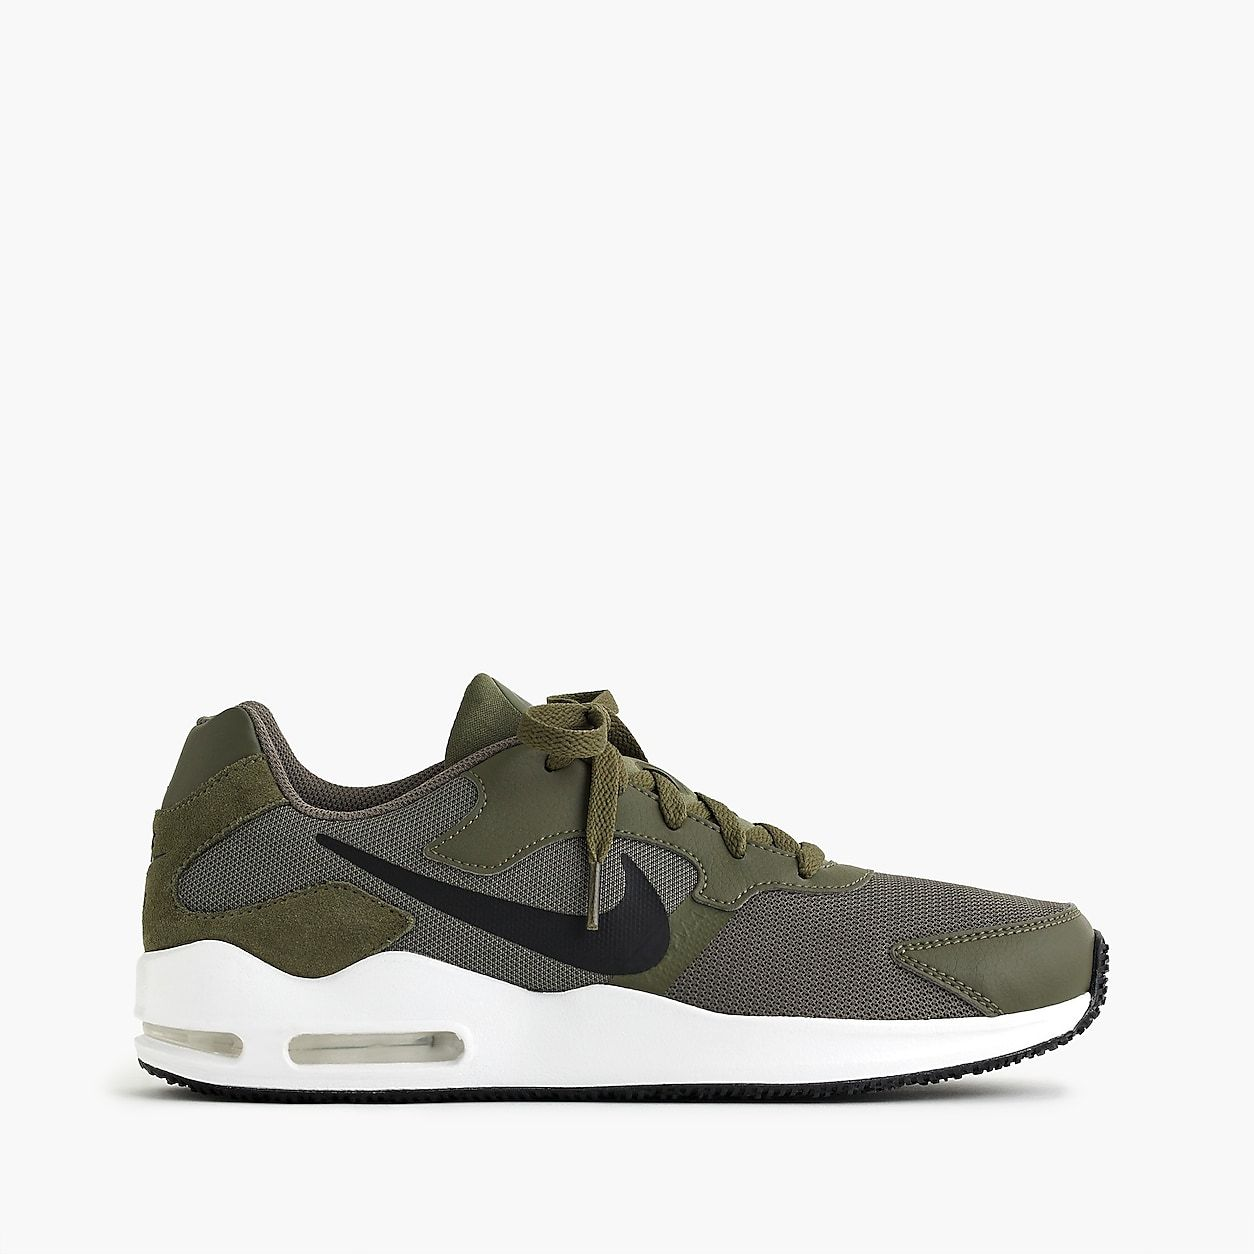 Nike Air Max Guile In Olive